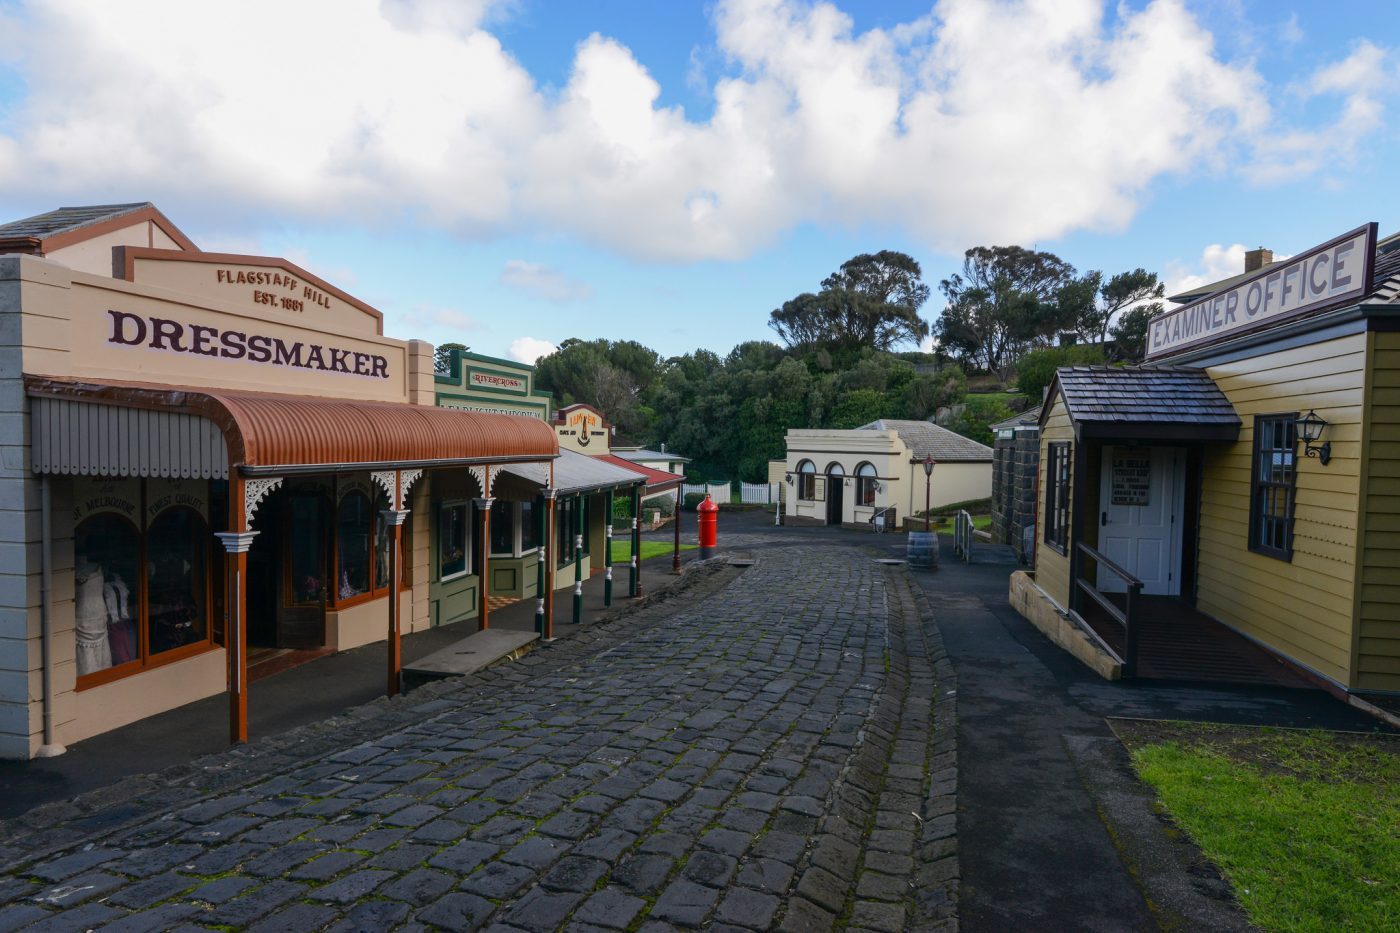 Great Ocean Drive Itinerary: Best Way to Tour Great Ocean Road, The Flagstaff Hill Maritime Village, Australia